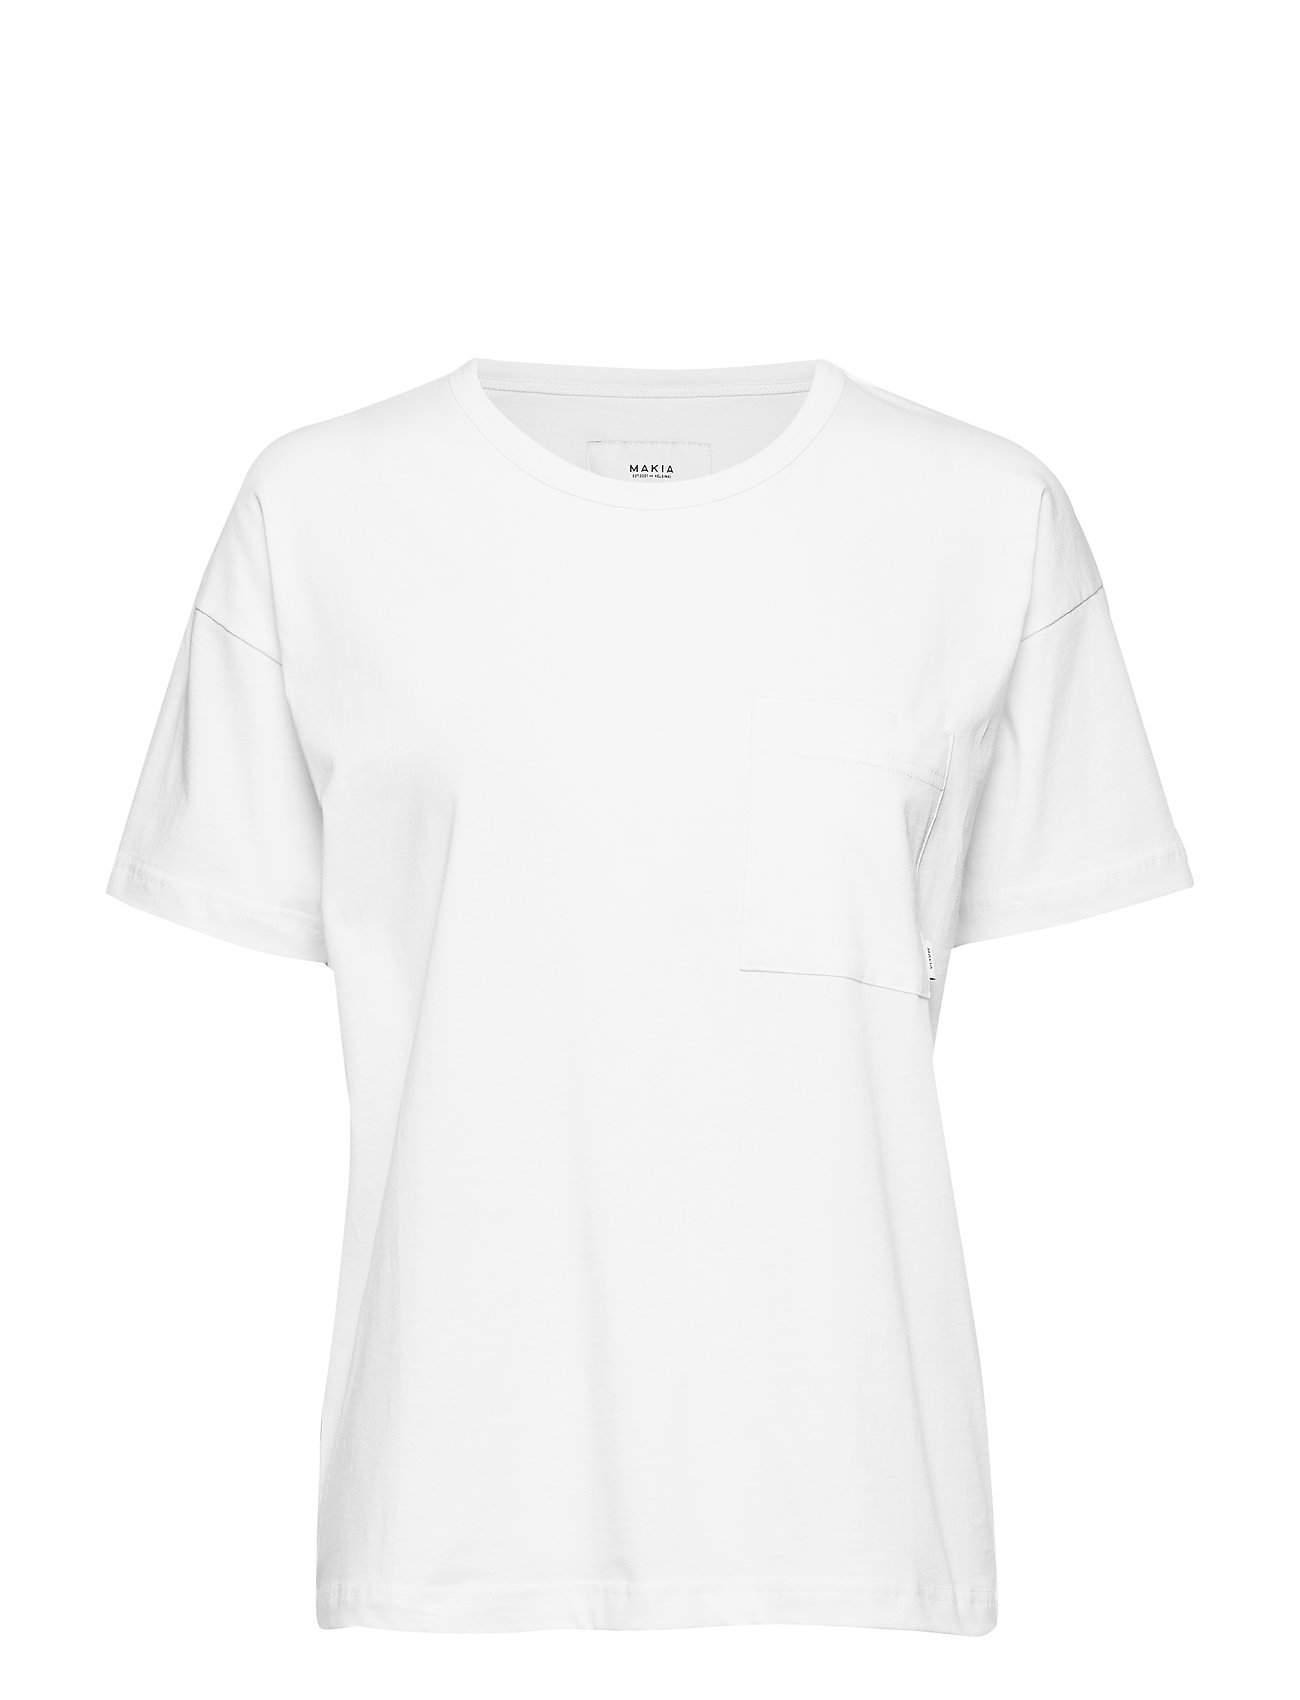 Makia Dusk T-Shirt - WHITE